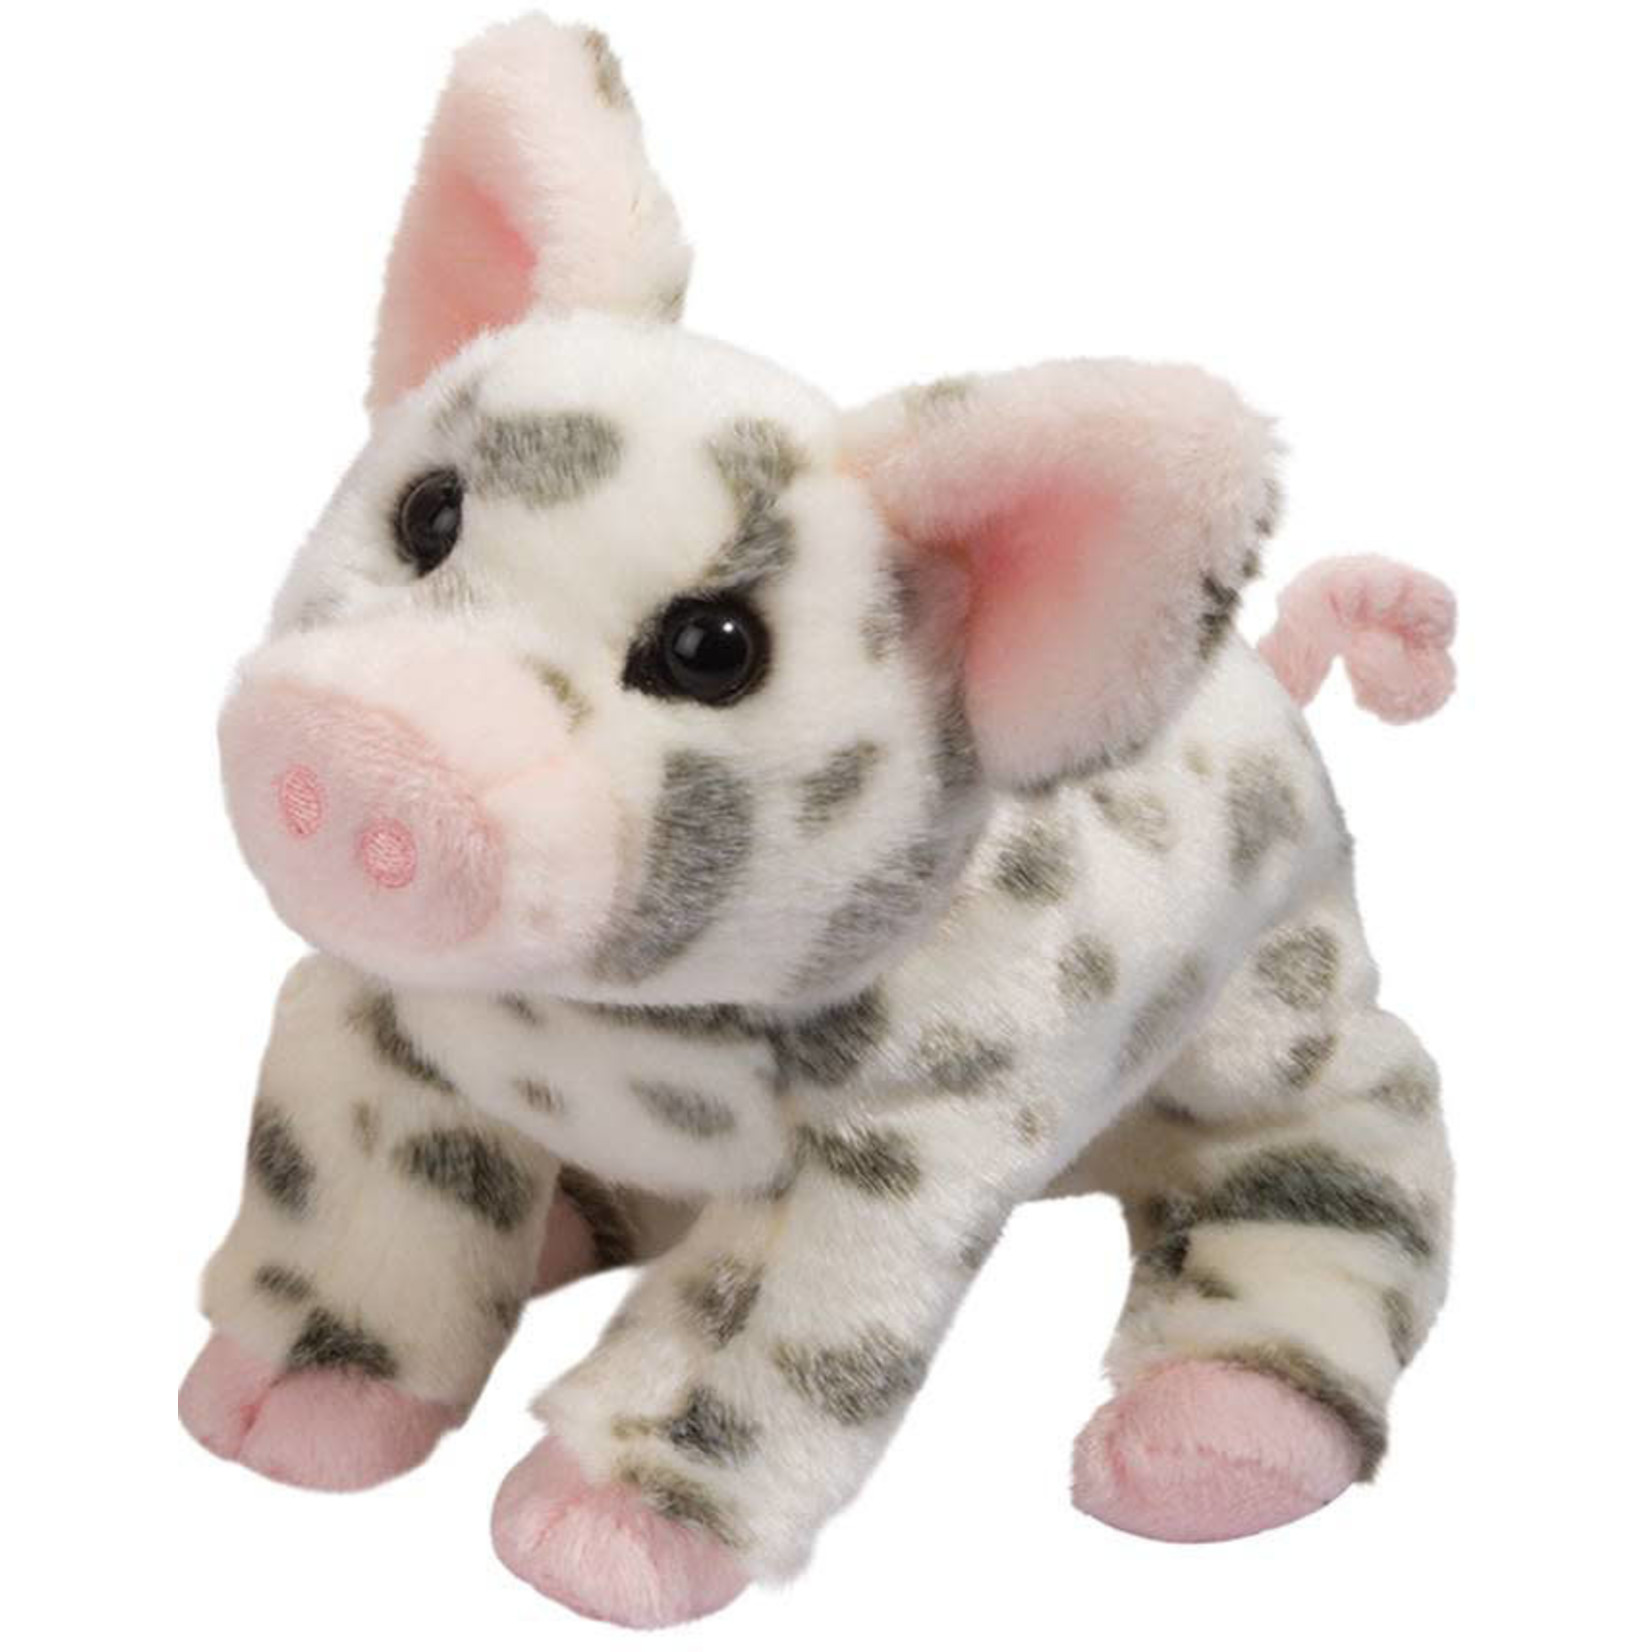 DOUGLAS PAULINE SPOTTED PIG SMALL